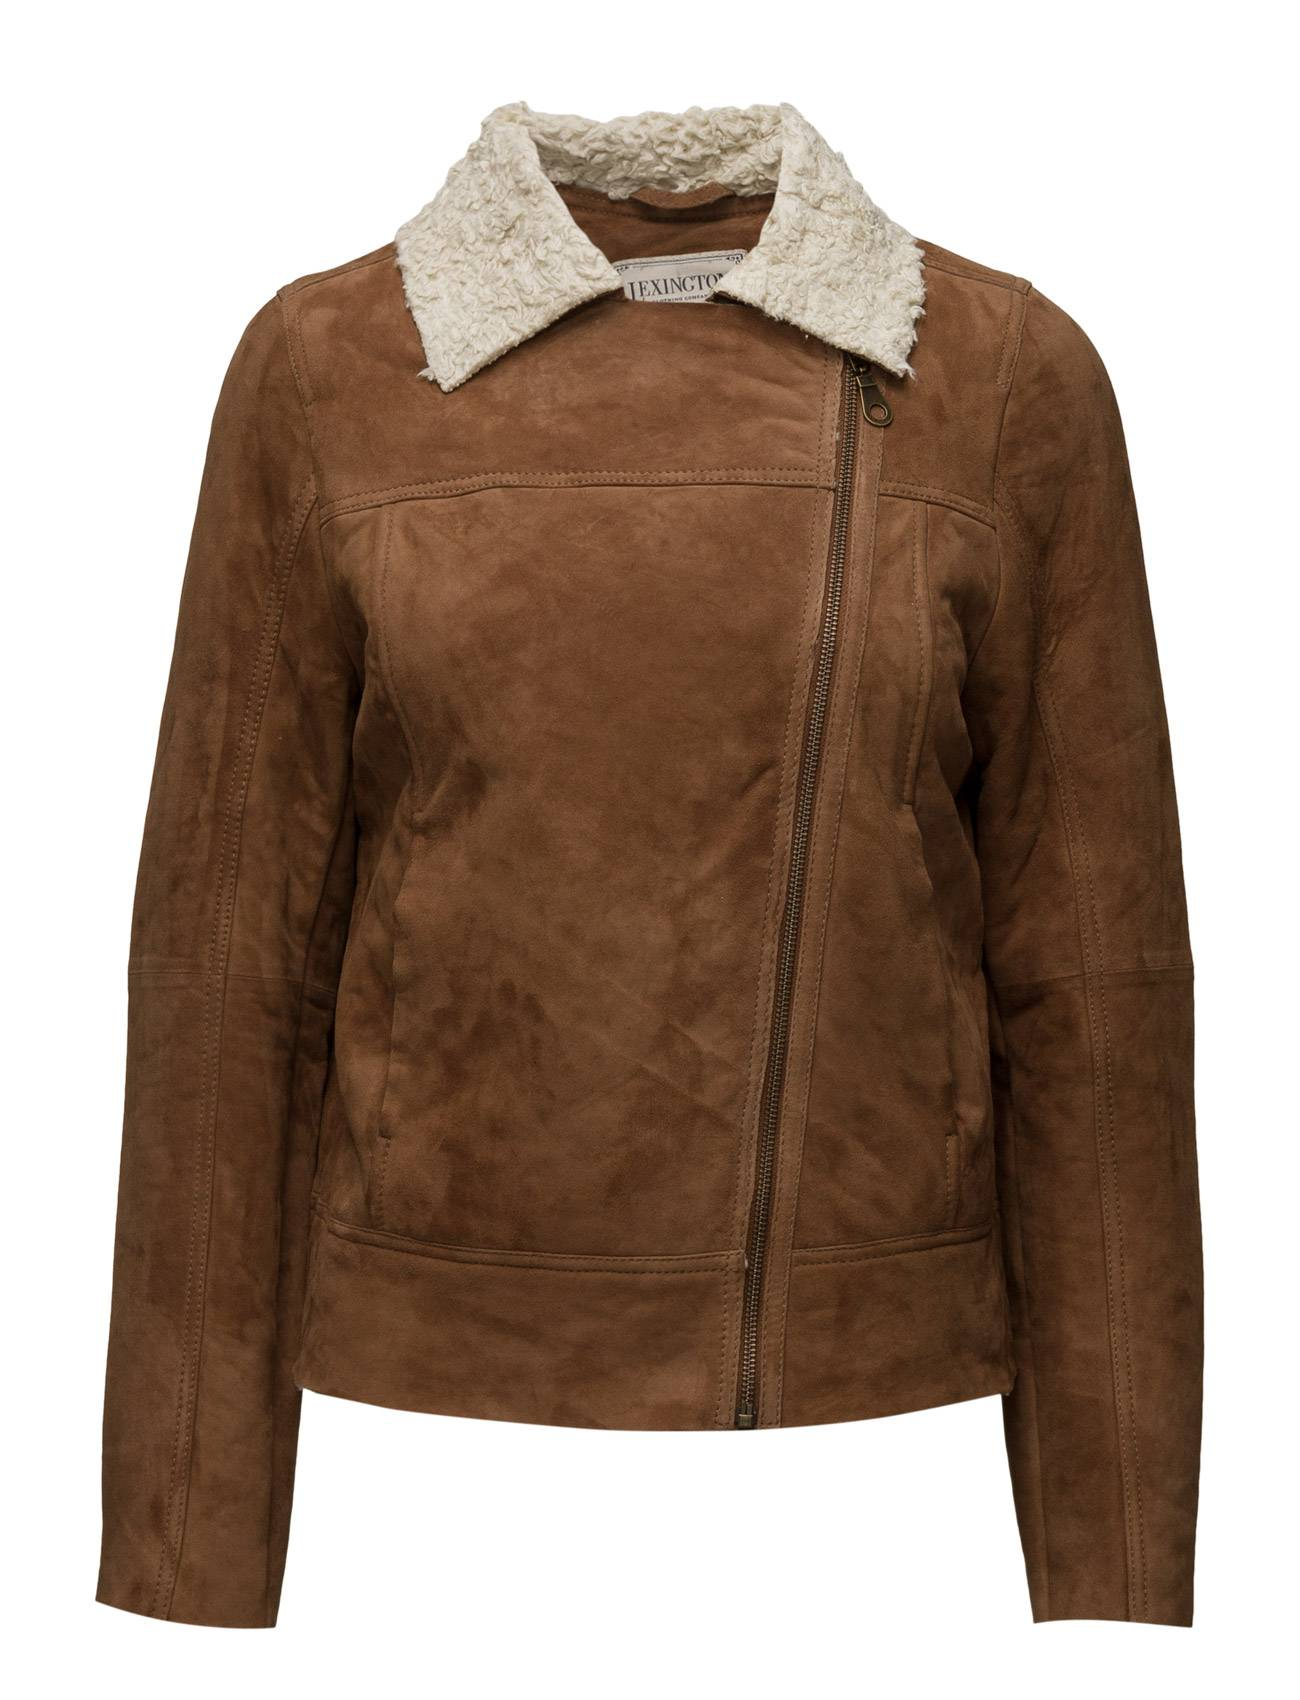 Lexington Company Danella Shearling Jacket